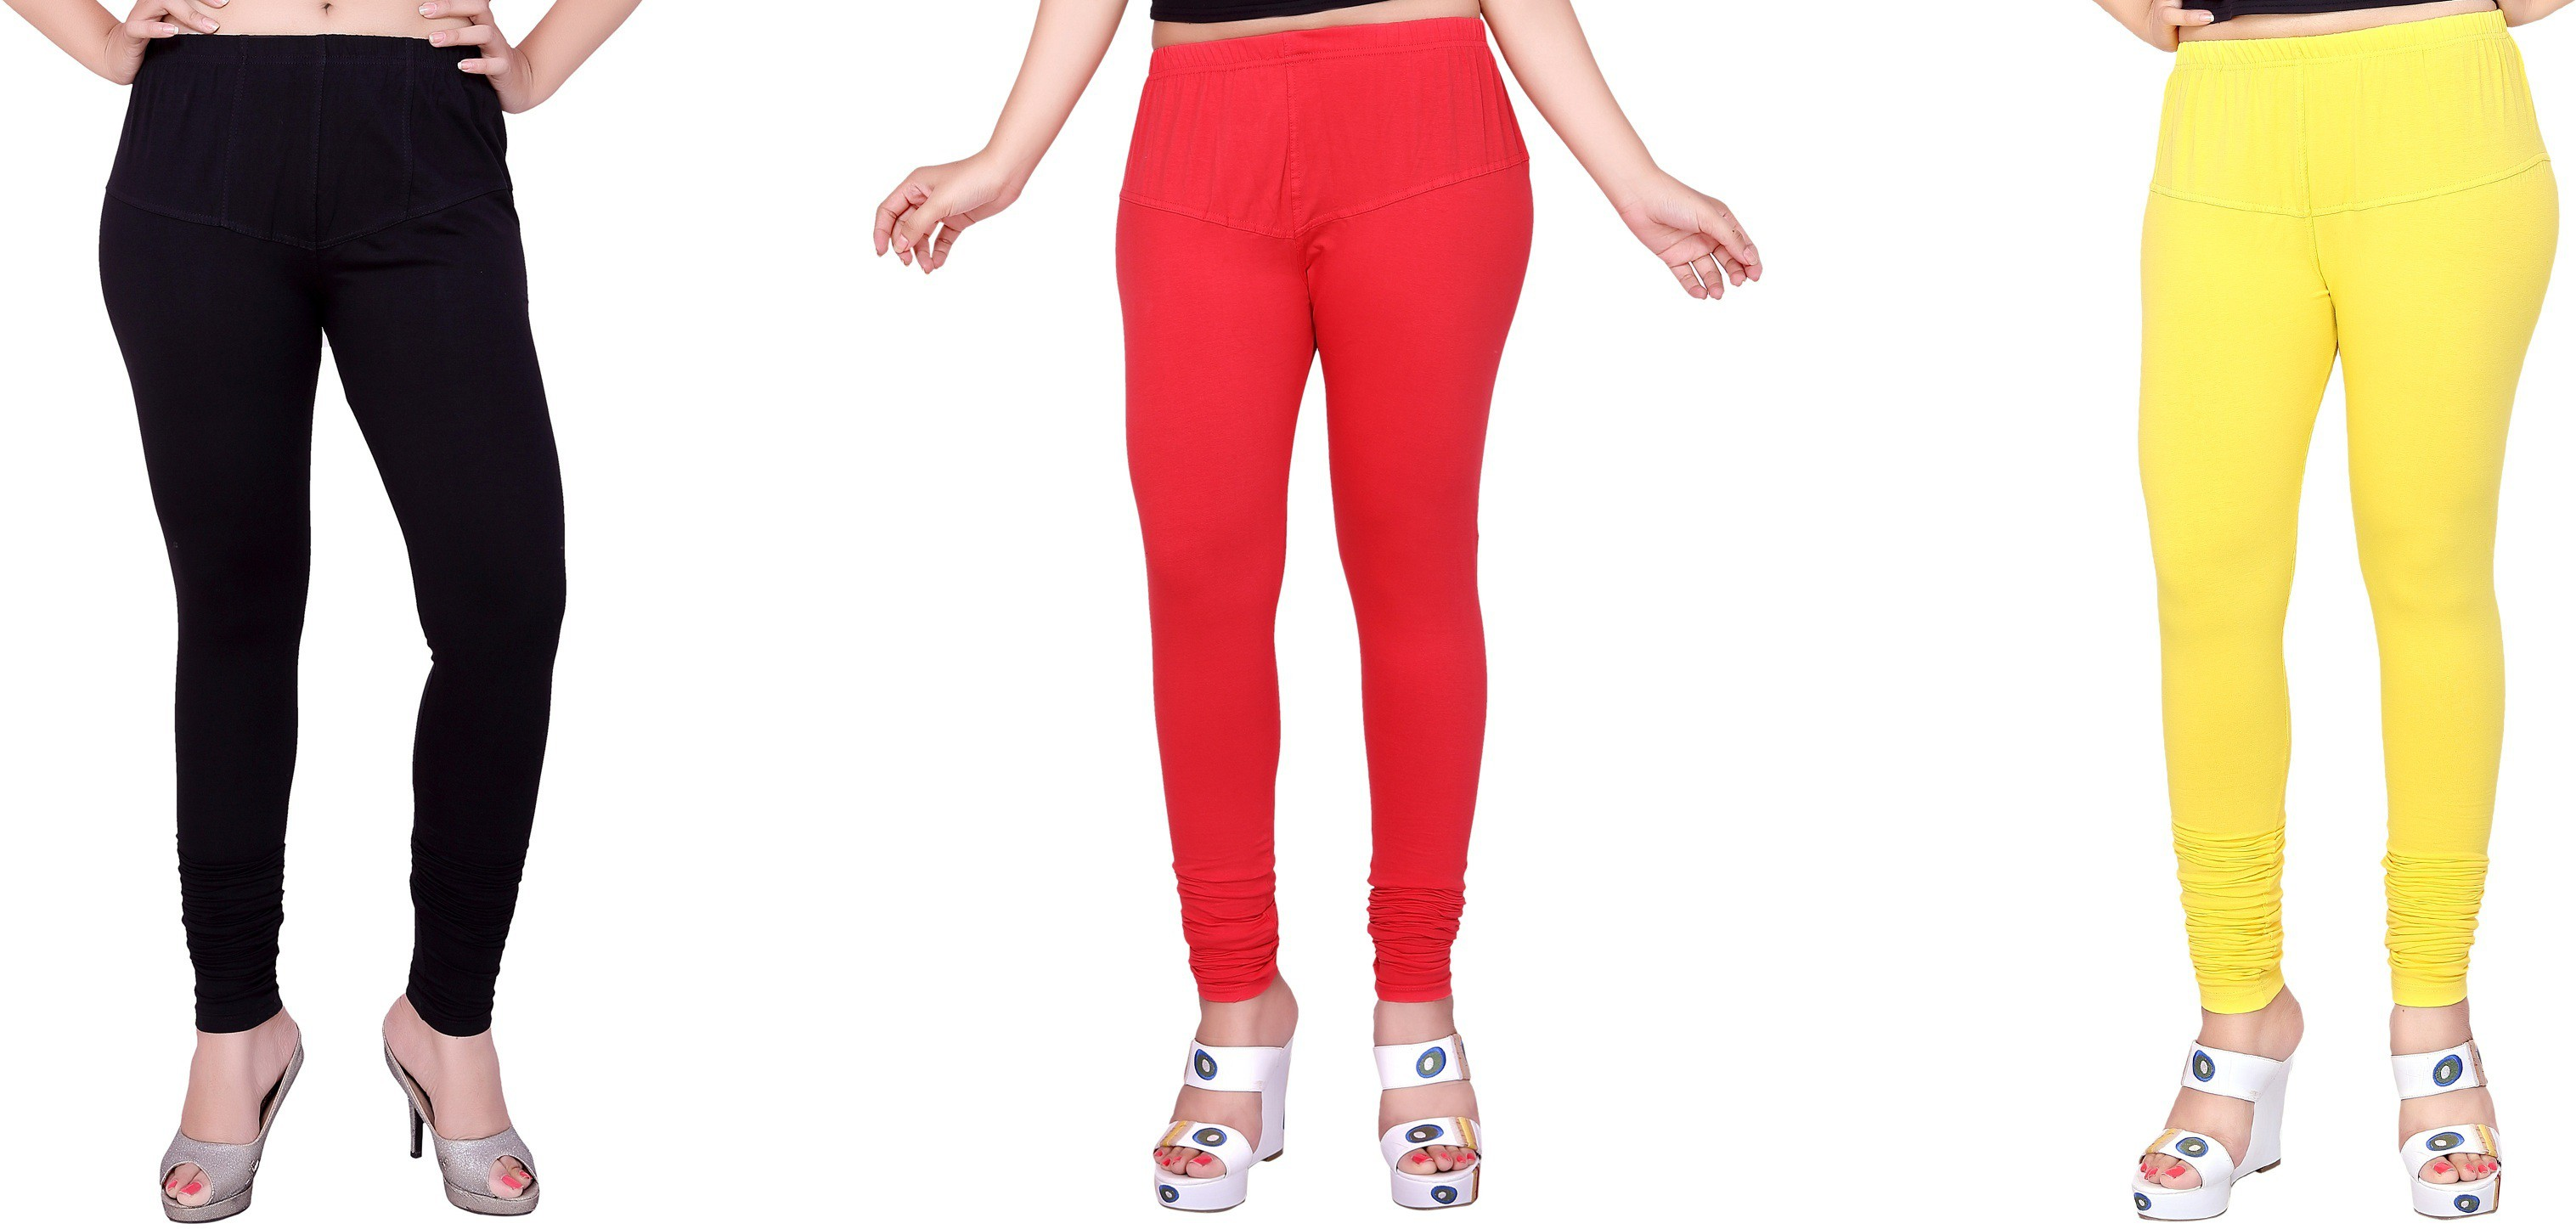 Fck3 Womens White, Red, Yellow Leggings(Pack of 3)